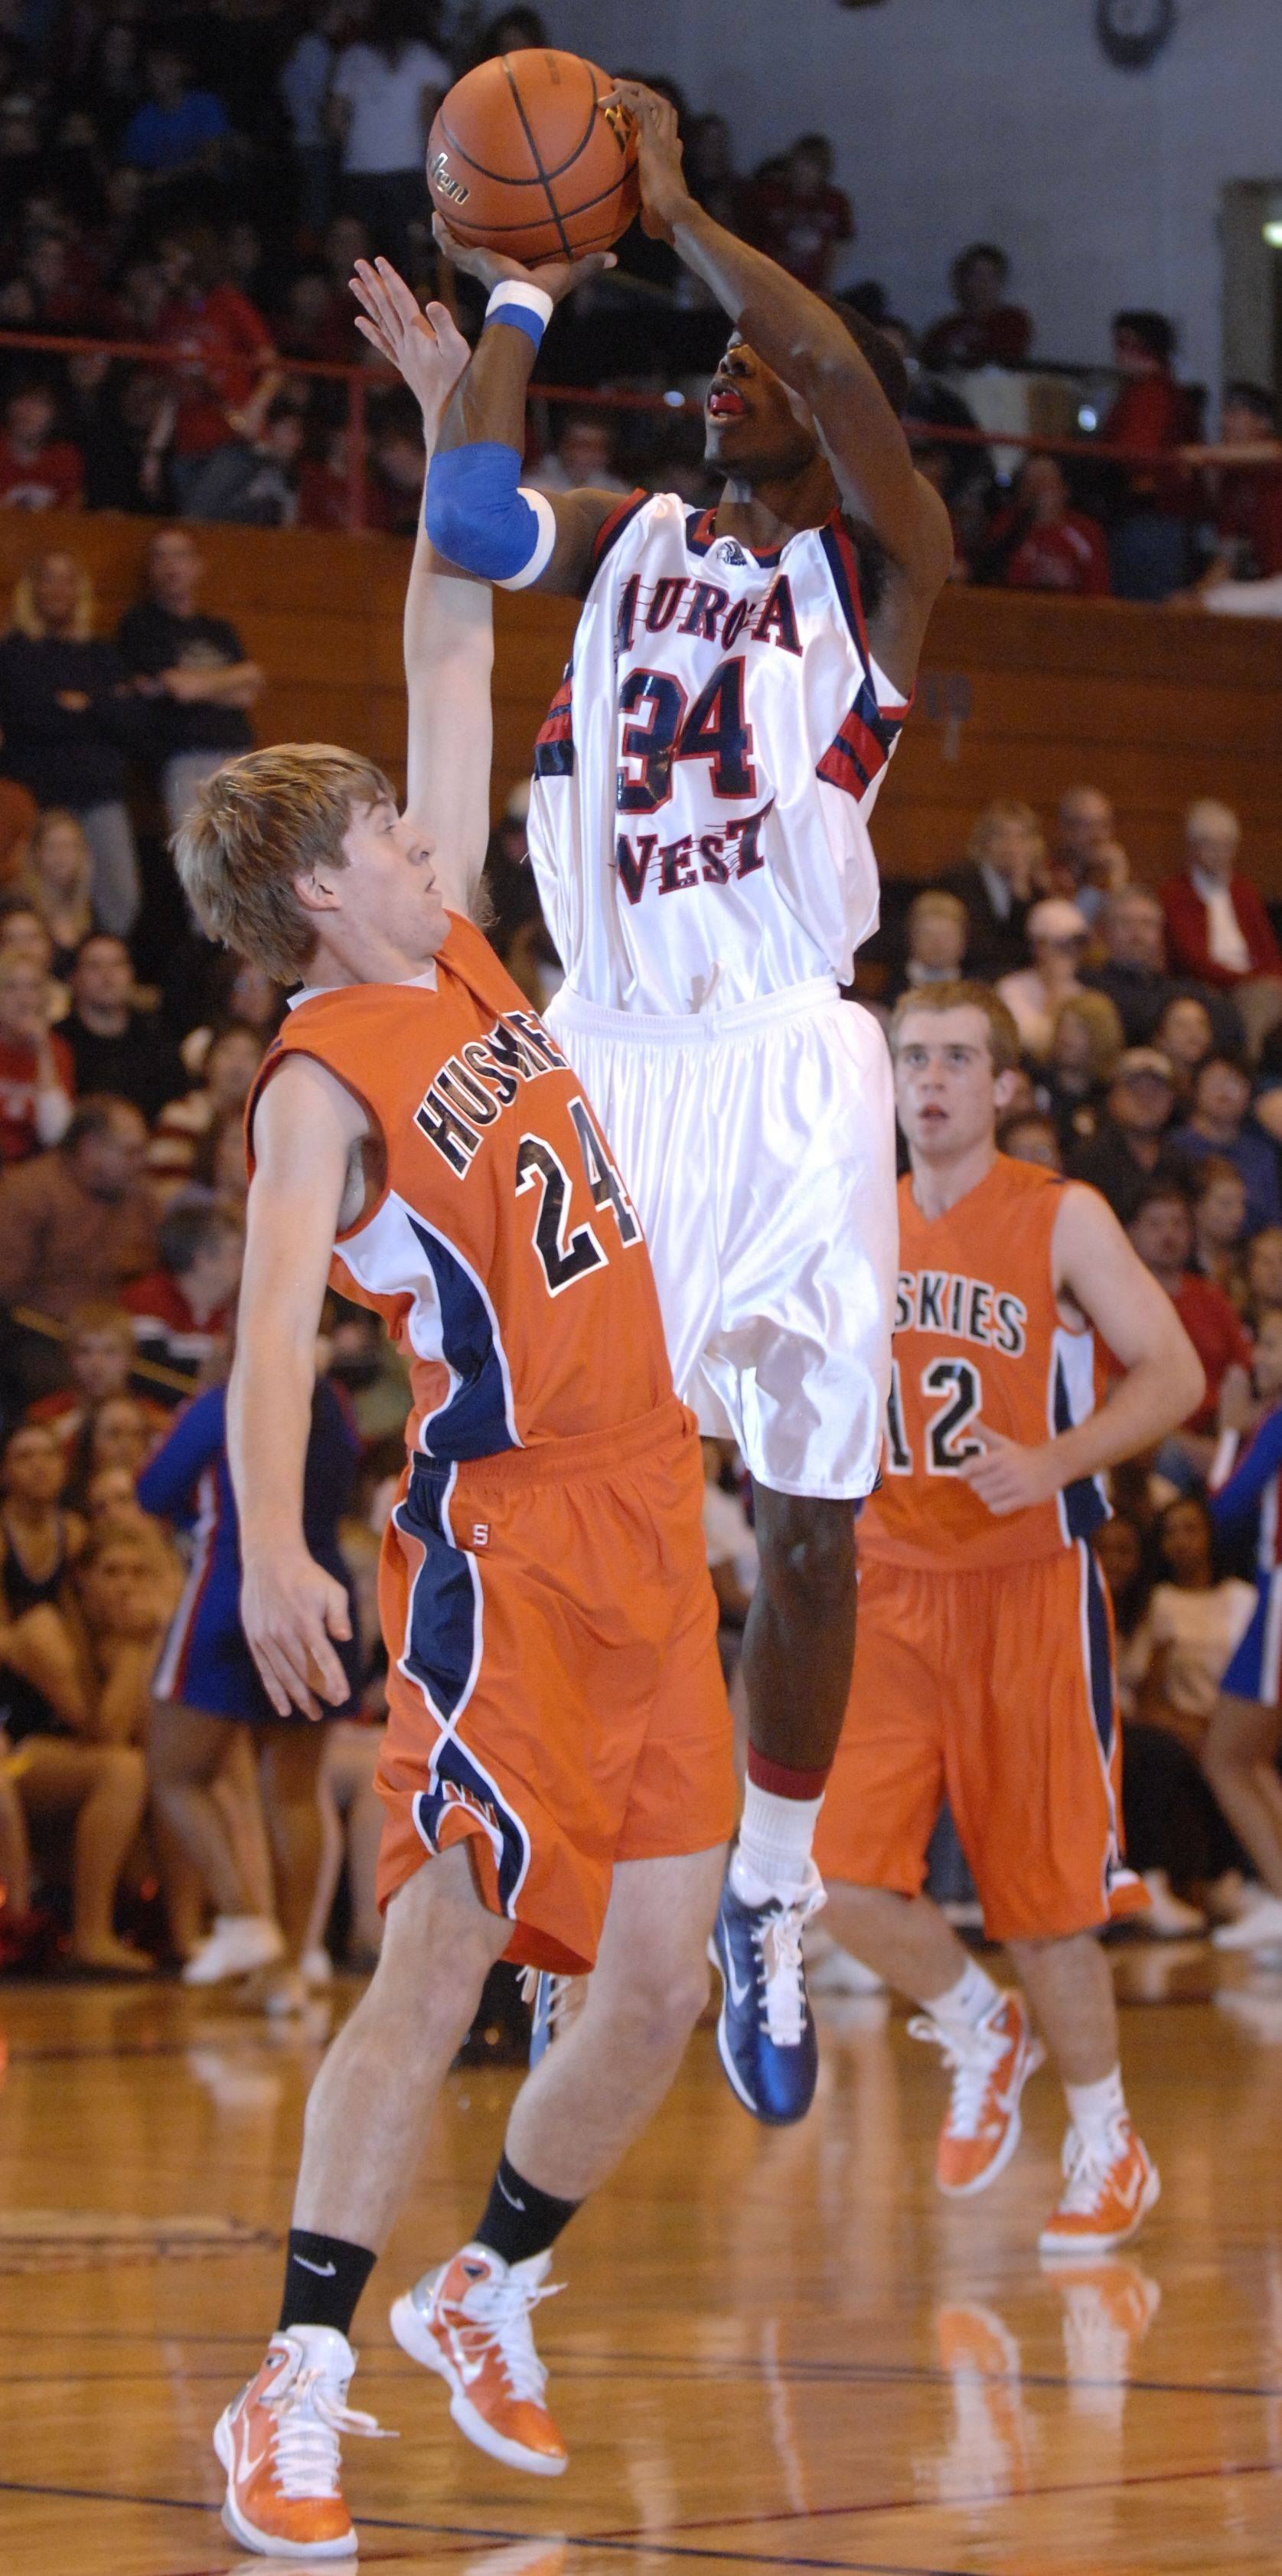 Images from the Naperville North vs. West Aurora boys basketball game Friday, December 10, 2010.